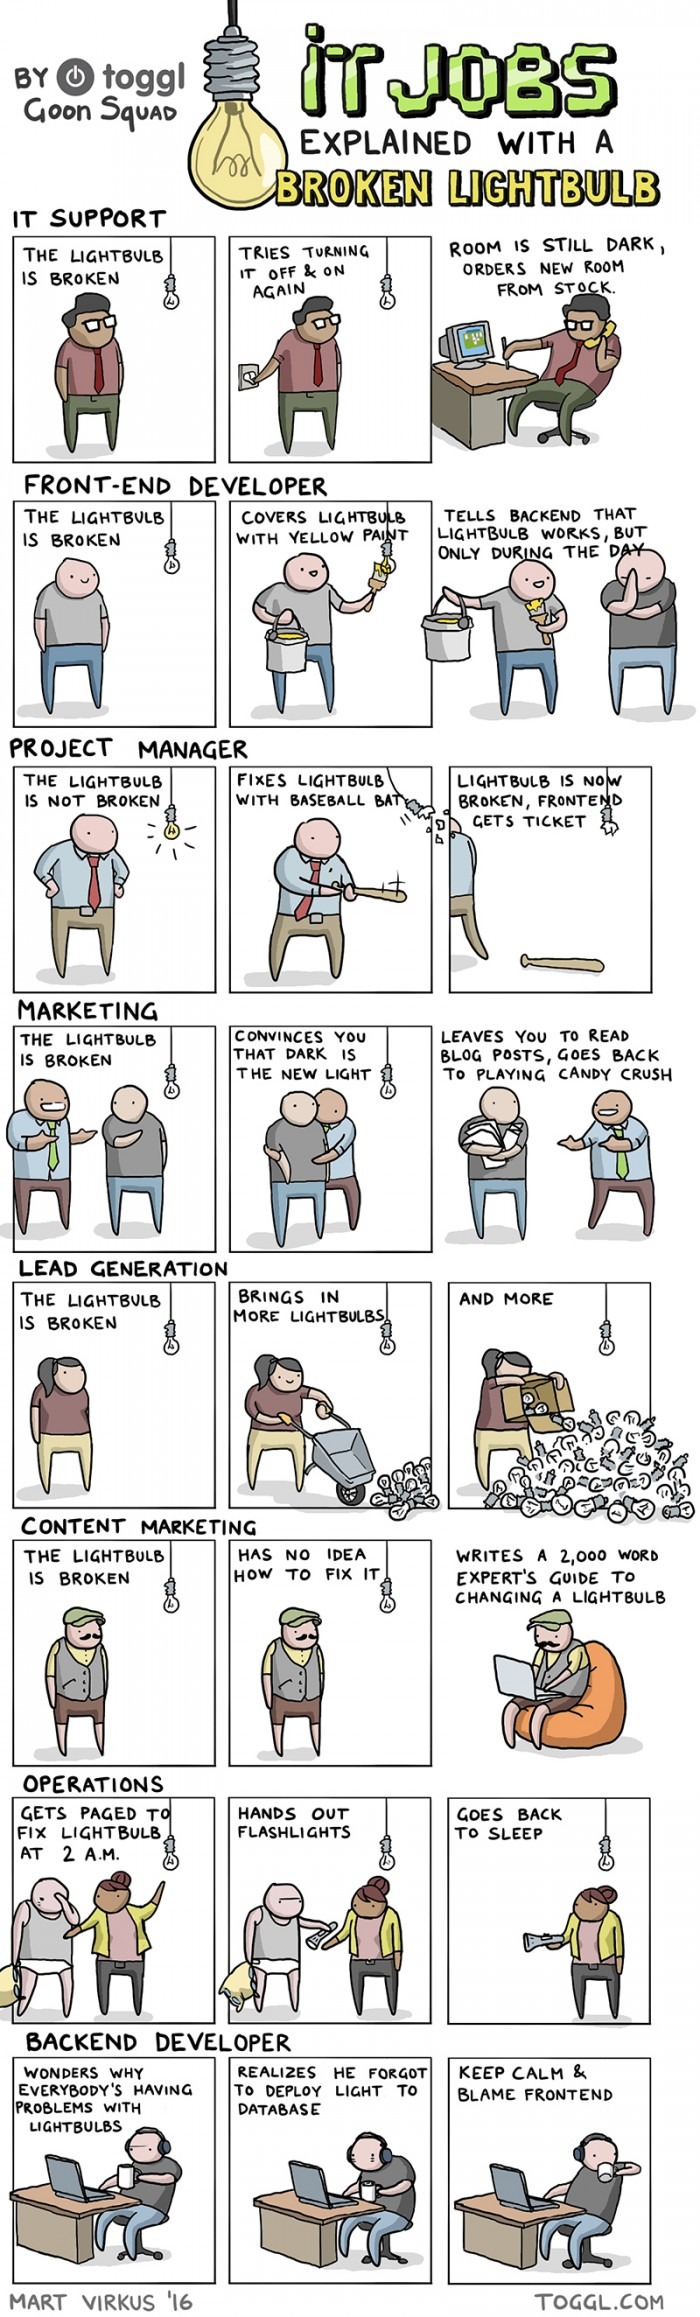 IT Jobs Explained With a Broken Lightbulb